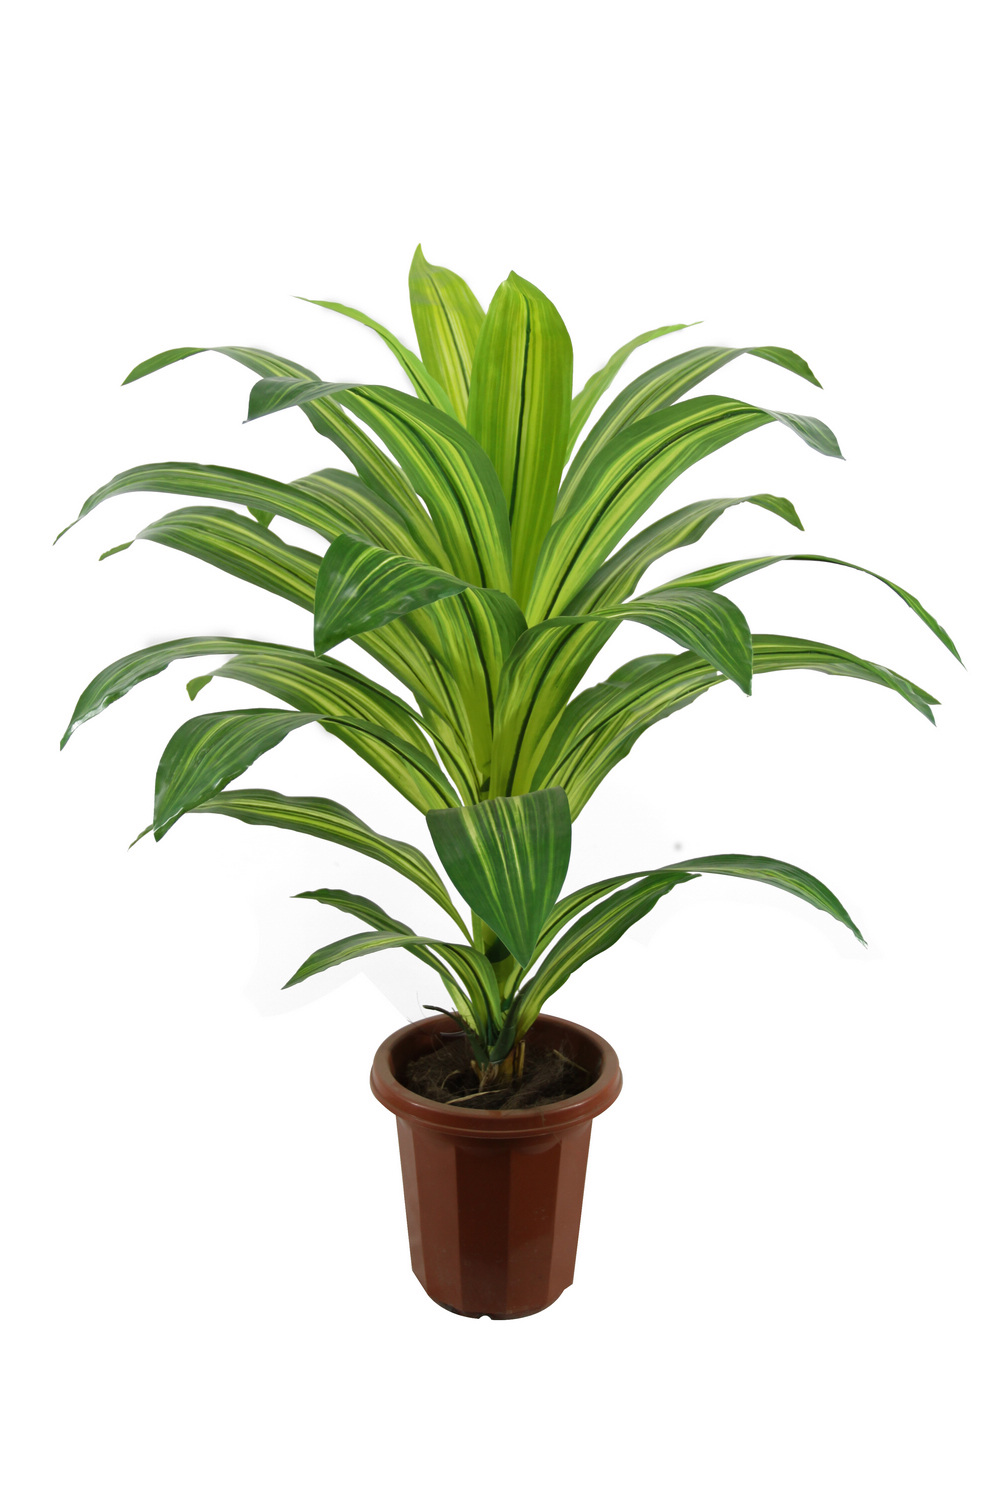 Dracaena-Fragrans-Bonsia-JTLA-0018-